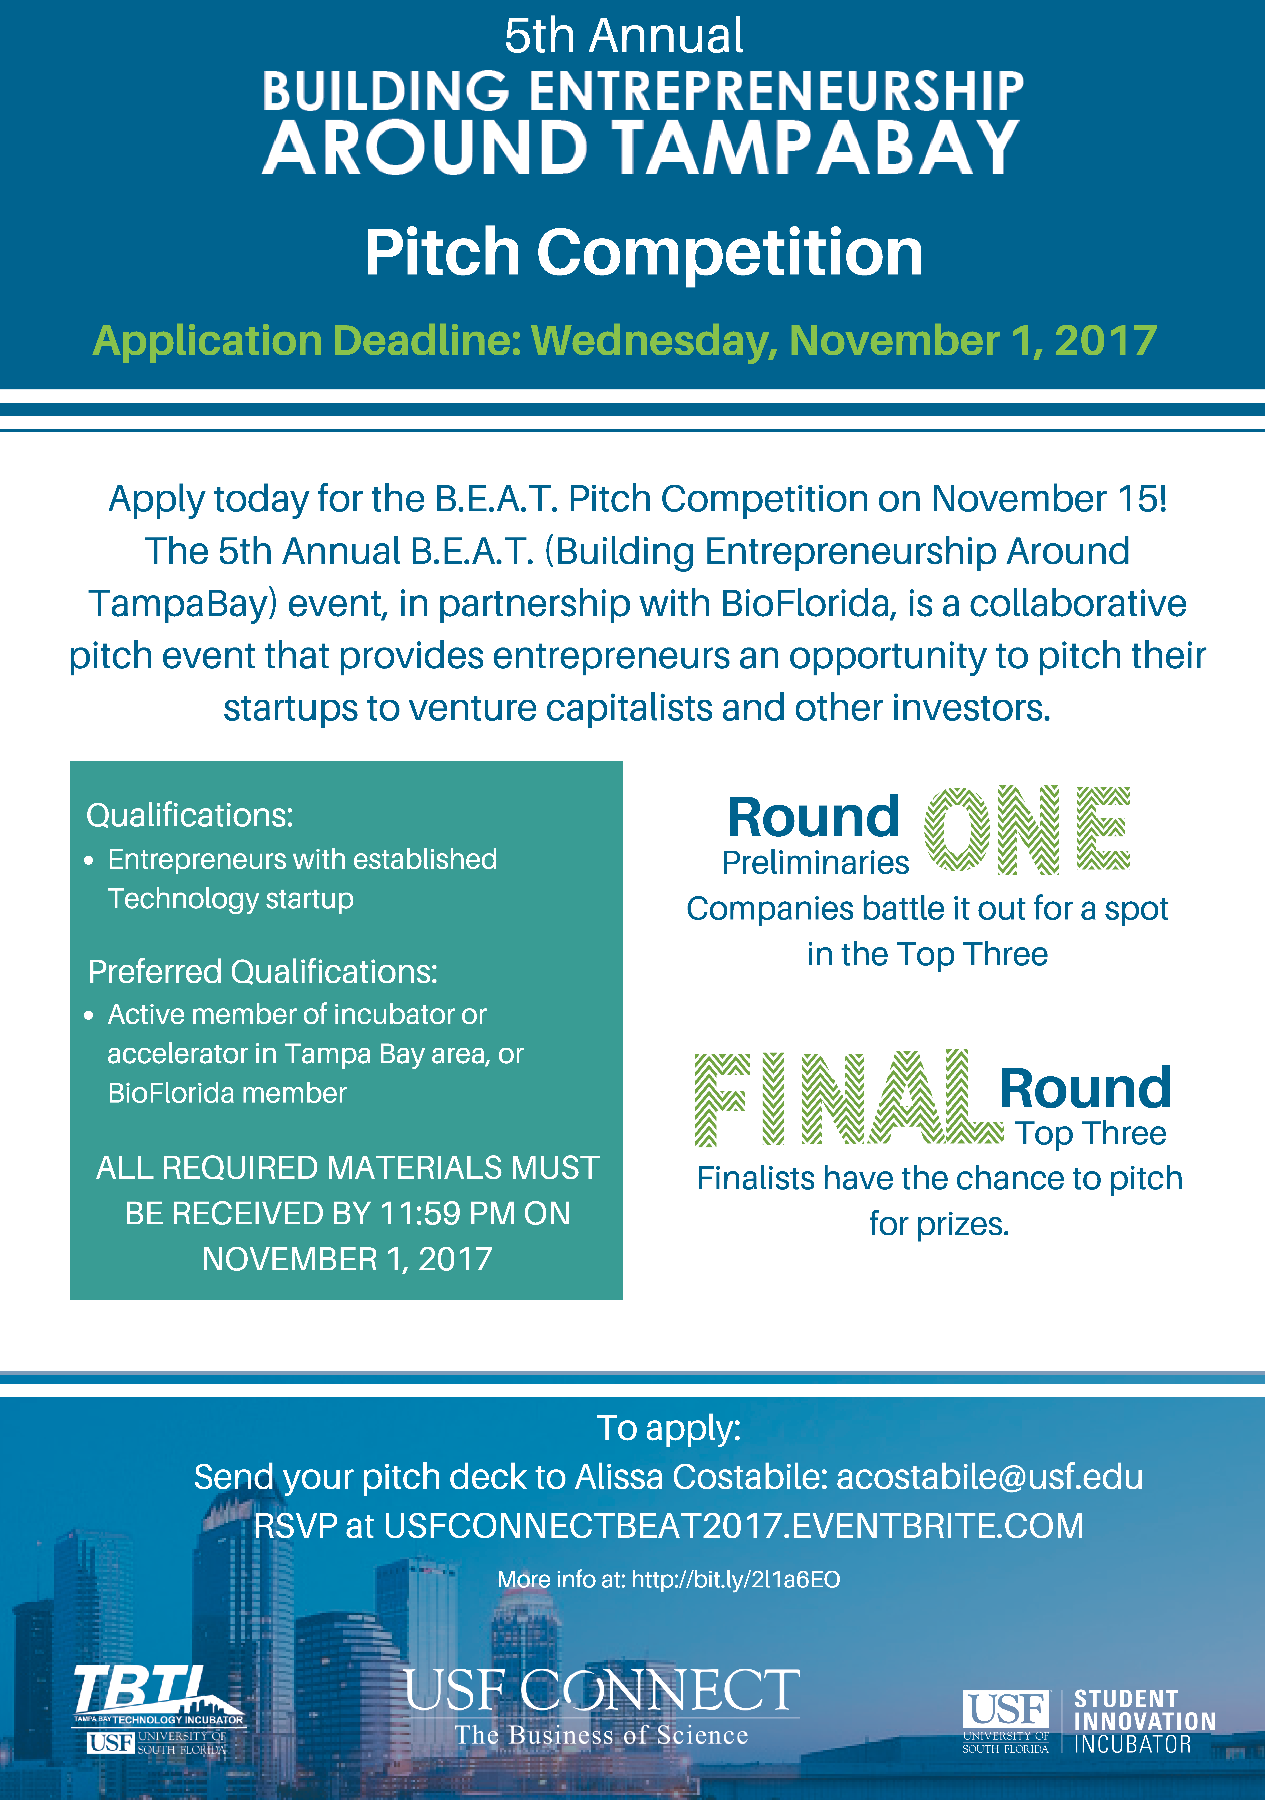 5th Annual B.E.A.T. Pitch Competition Flyer